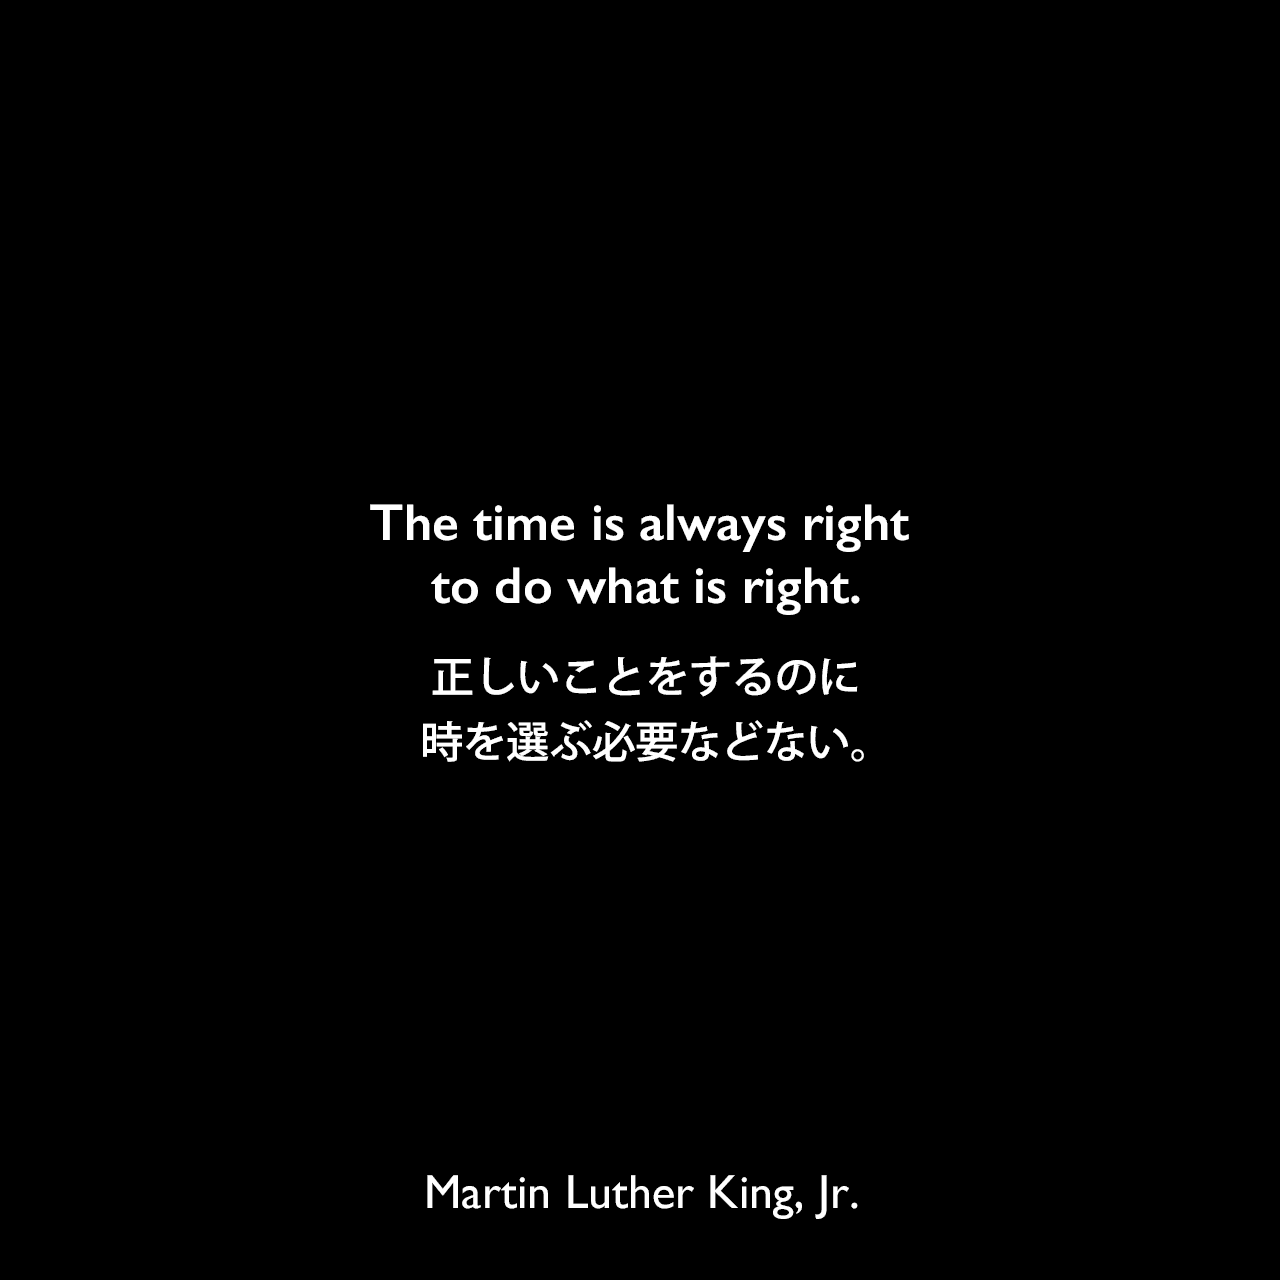 The time is always right to do what is right.正しいことをするのに、時を選ぶ必要などない。Martin Luther King, Jr.